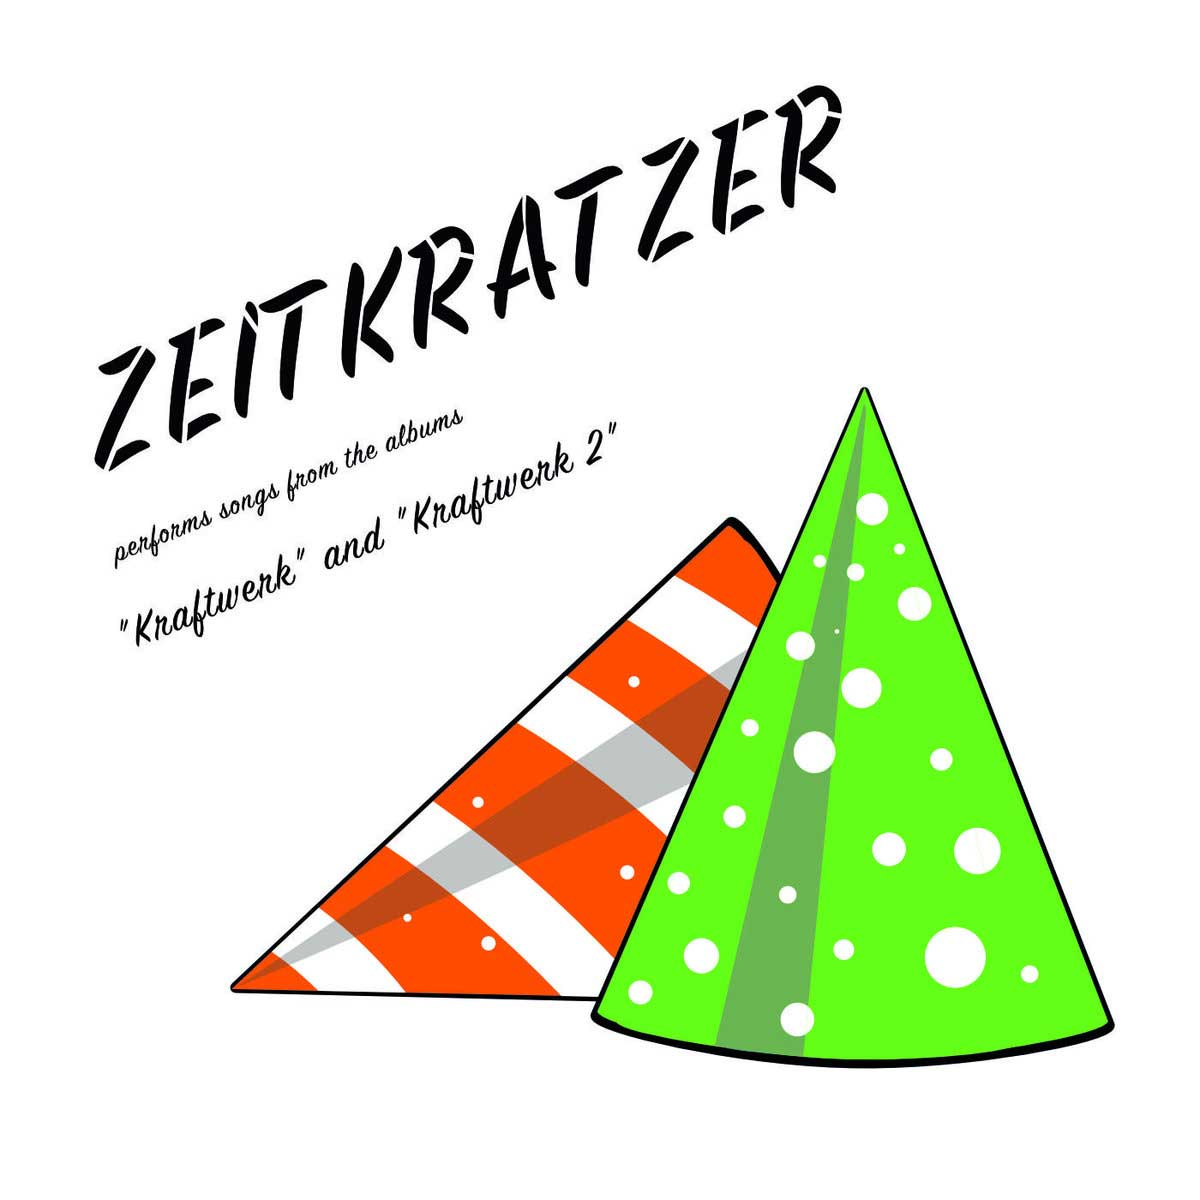 ZEITKRATZER PERFORMS SONGS FROM